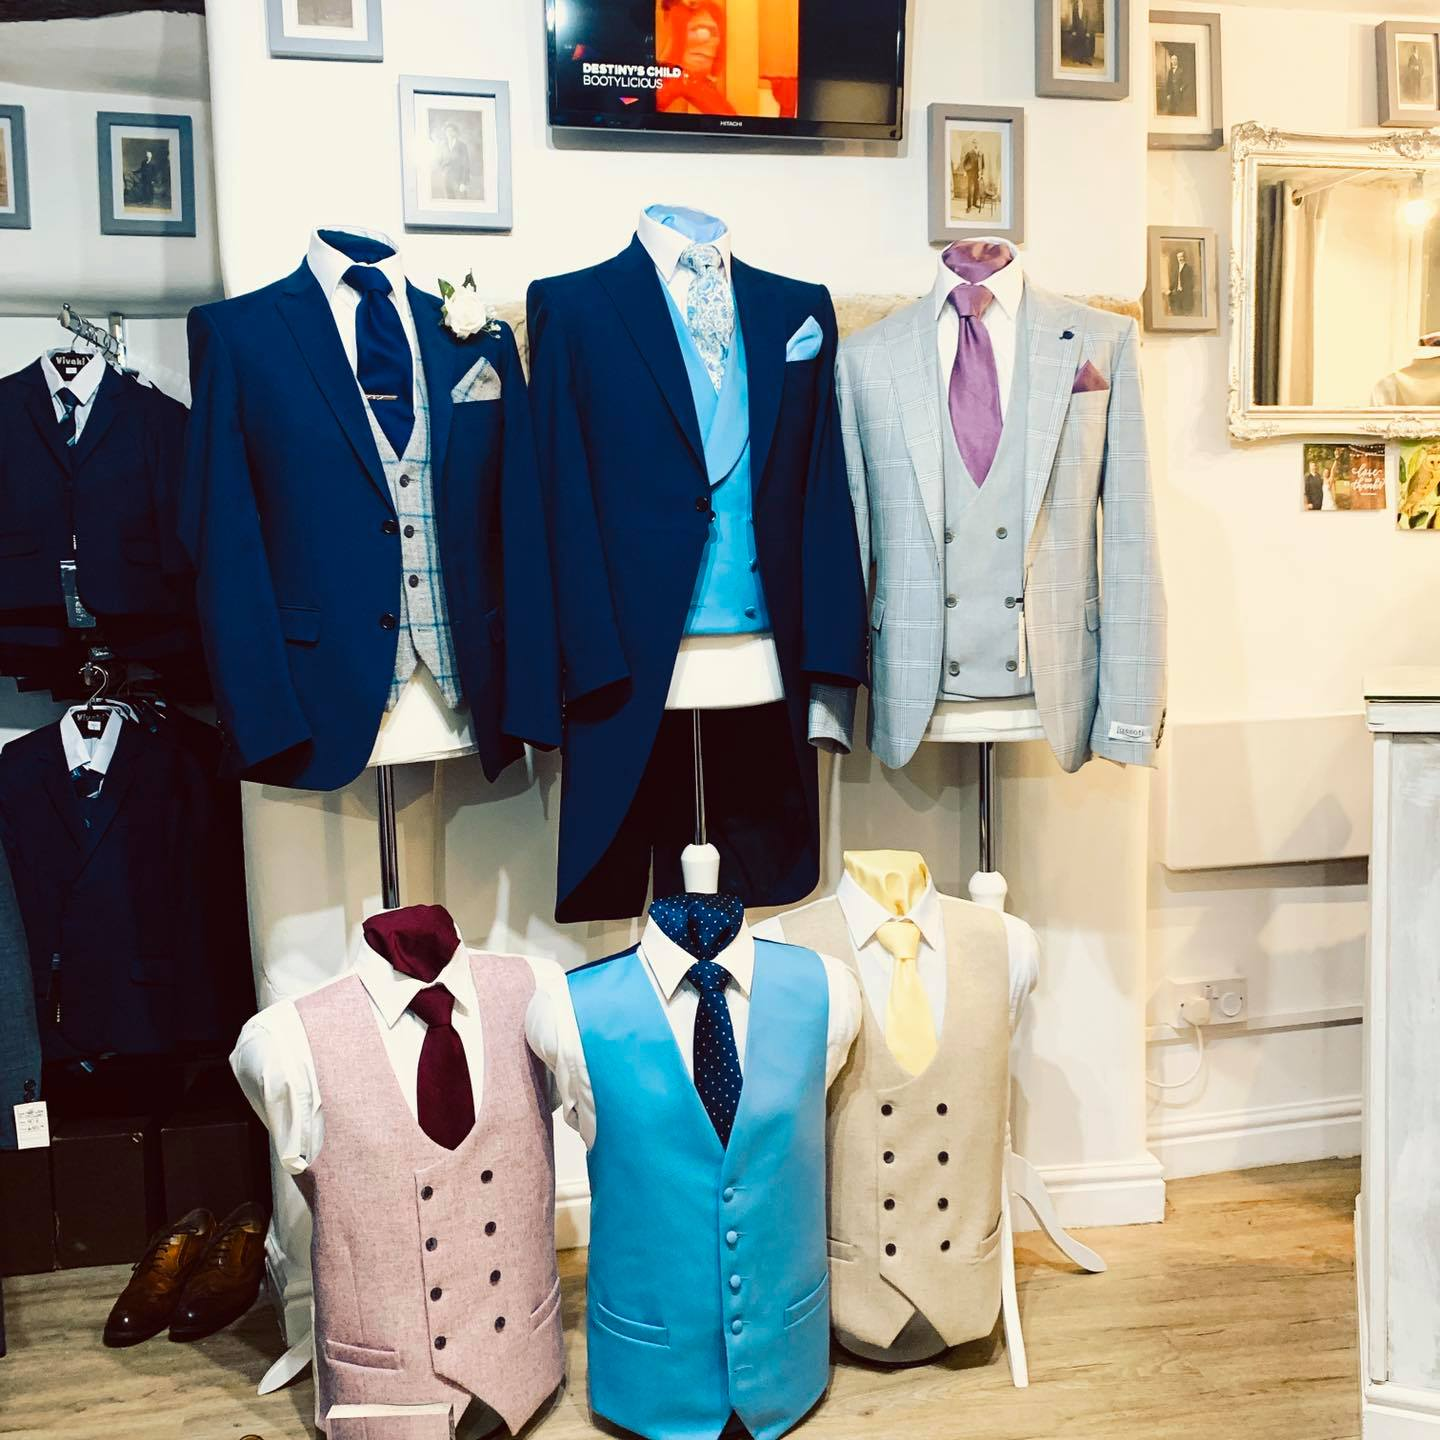 Reece Ford Suit Hire